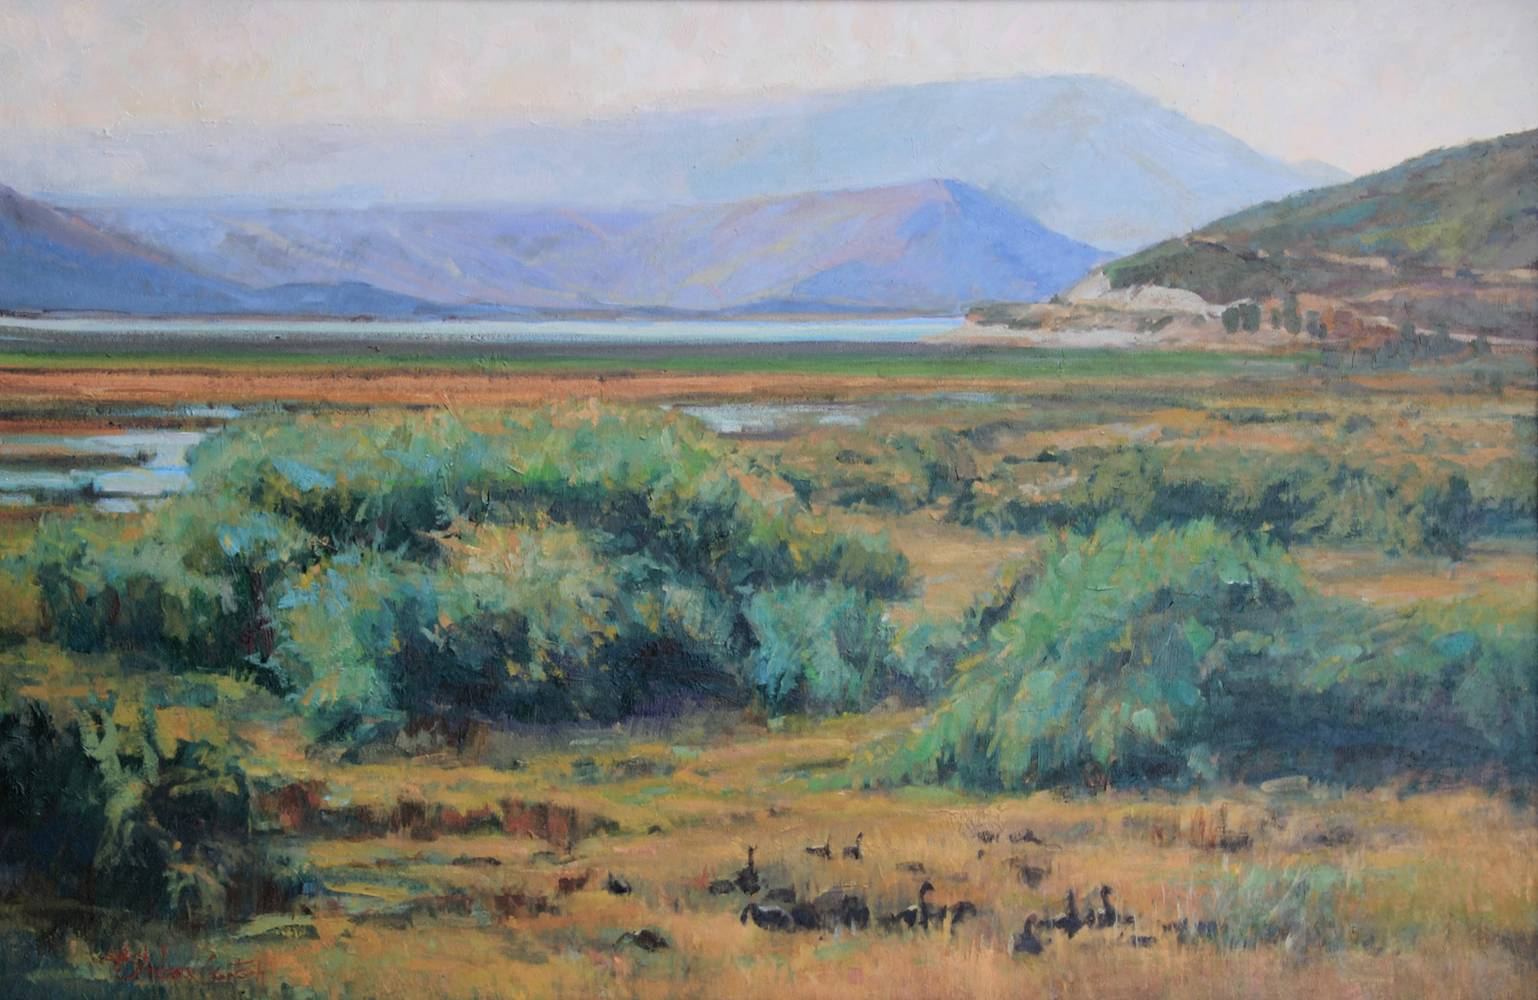 Oil painting Deer Creek View by Susette Gertsch